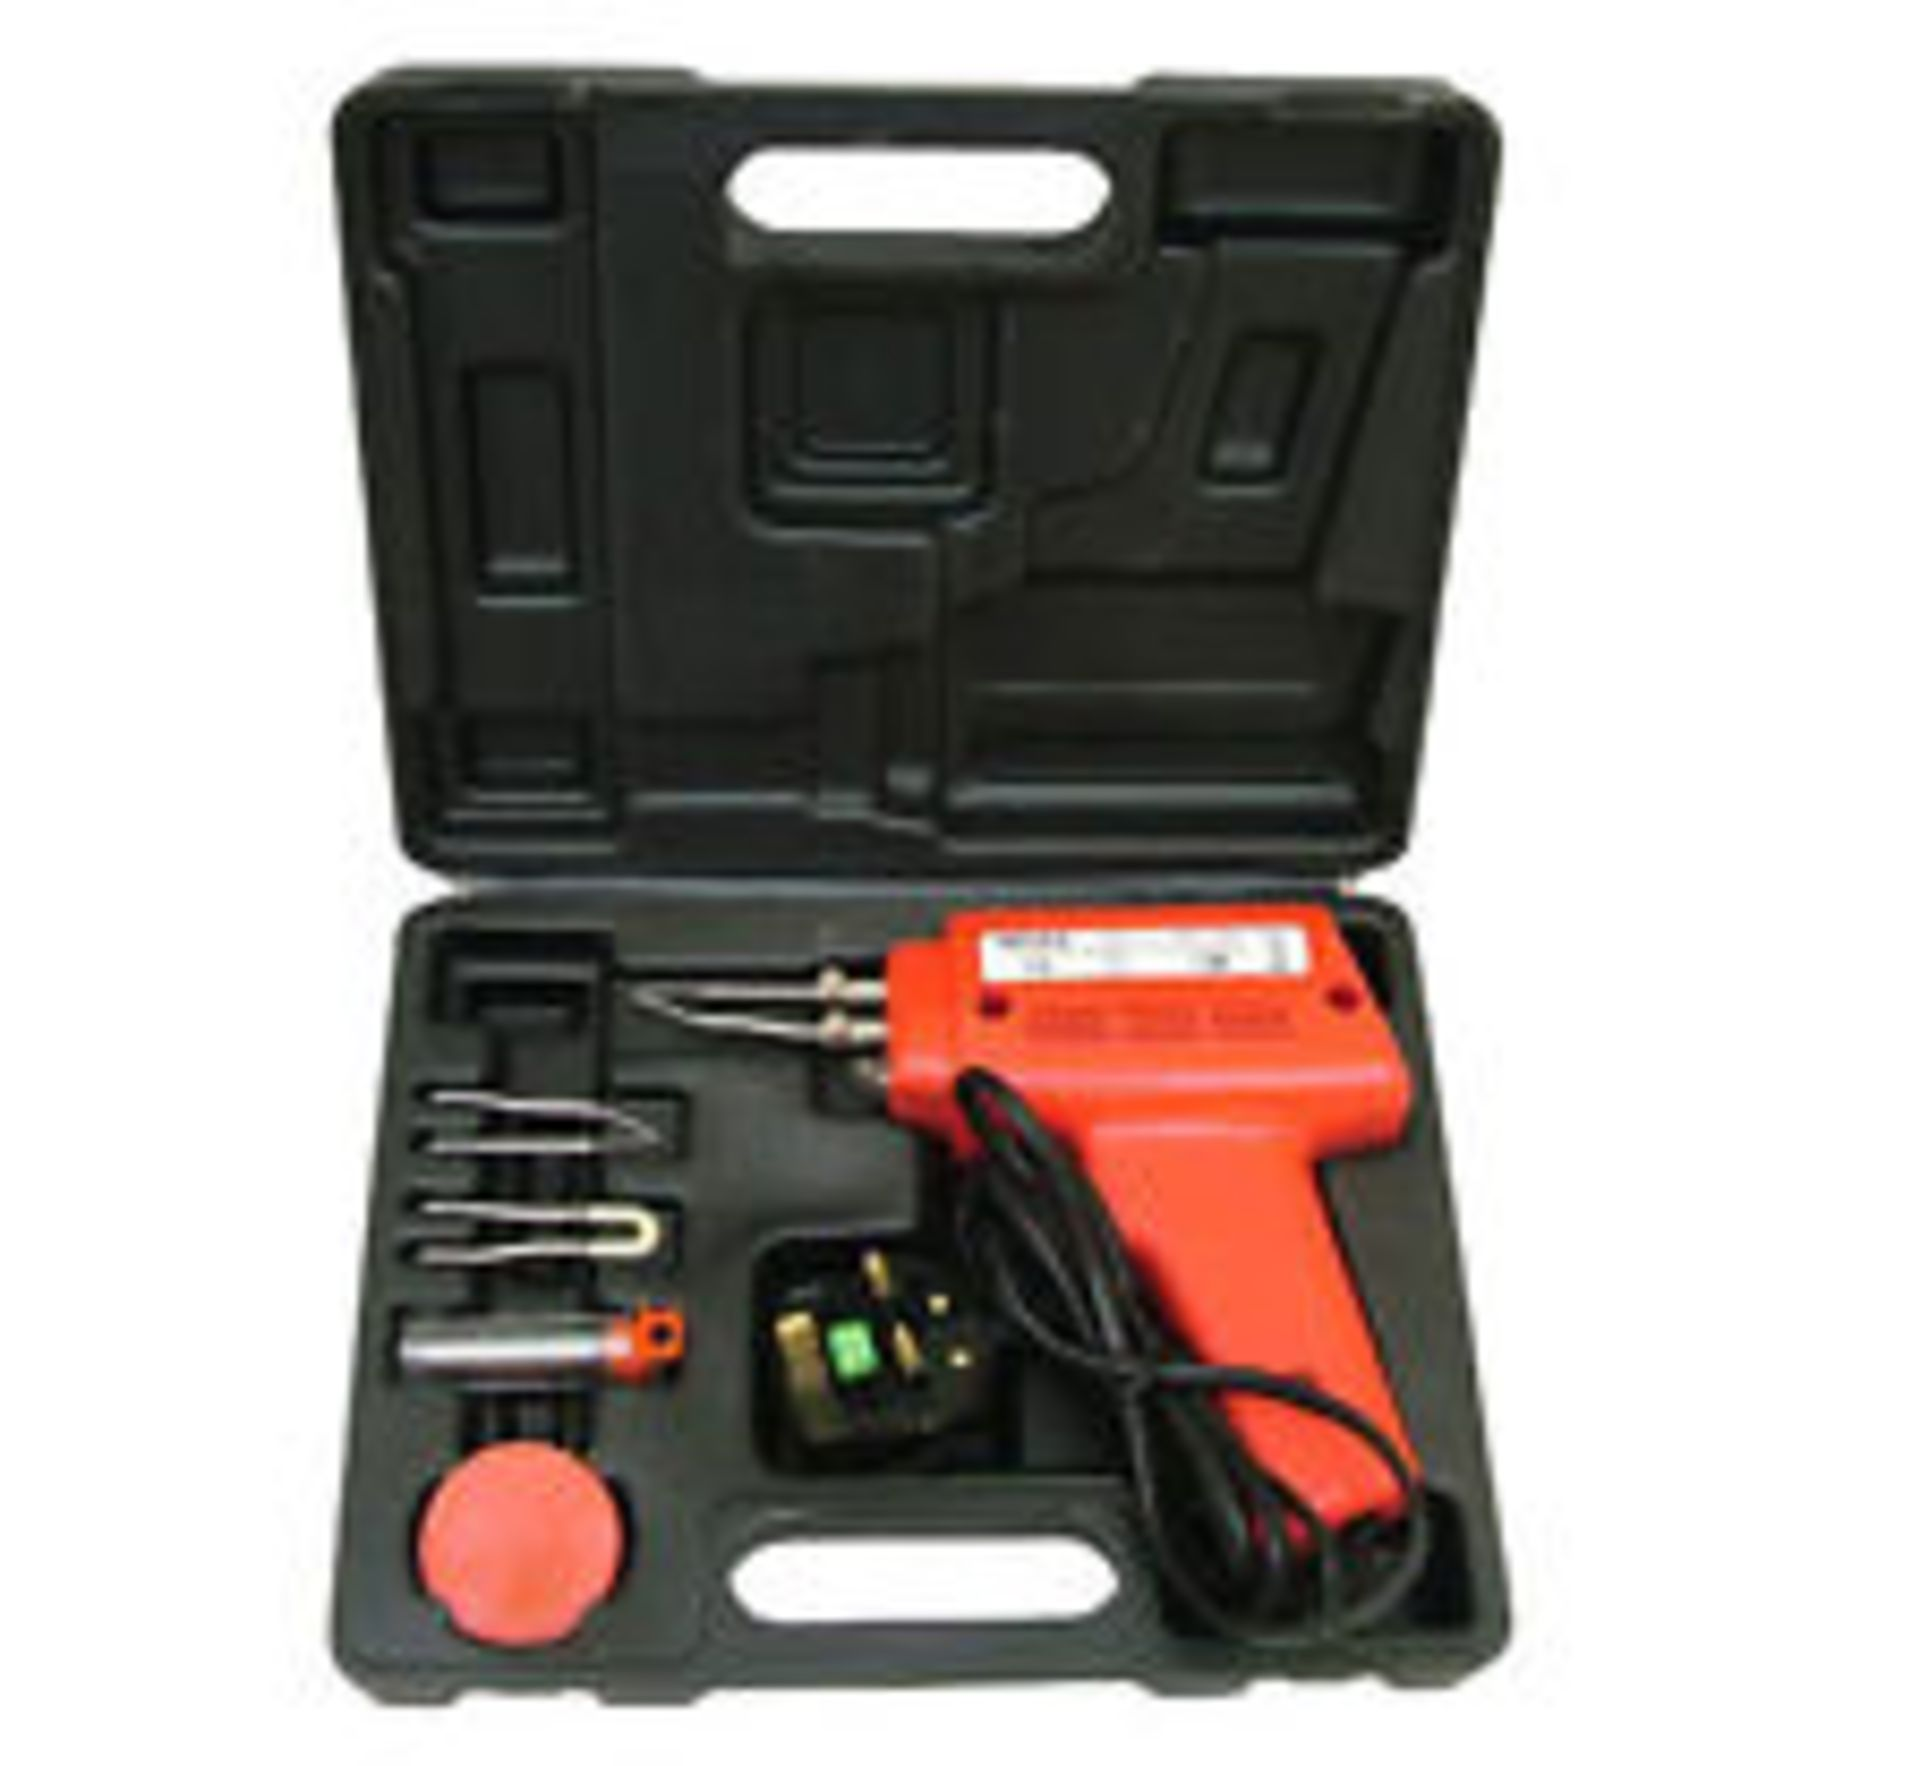 Lot 13611 - V Brand New 175 Watt Electric Soldering Gun Kit